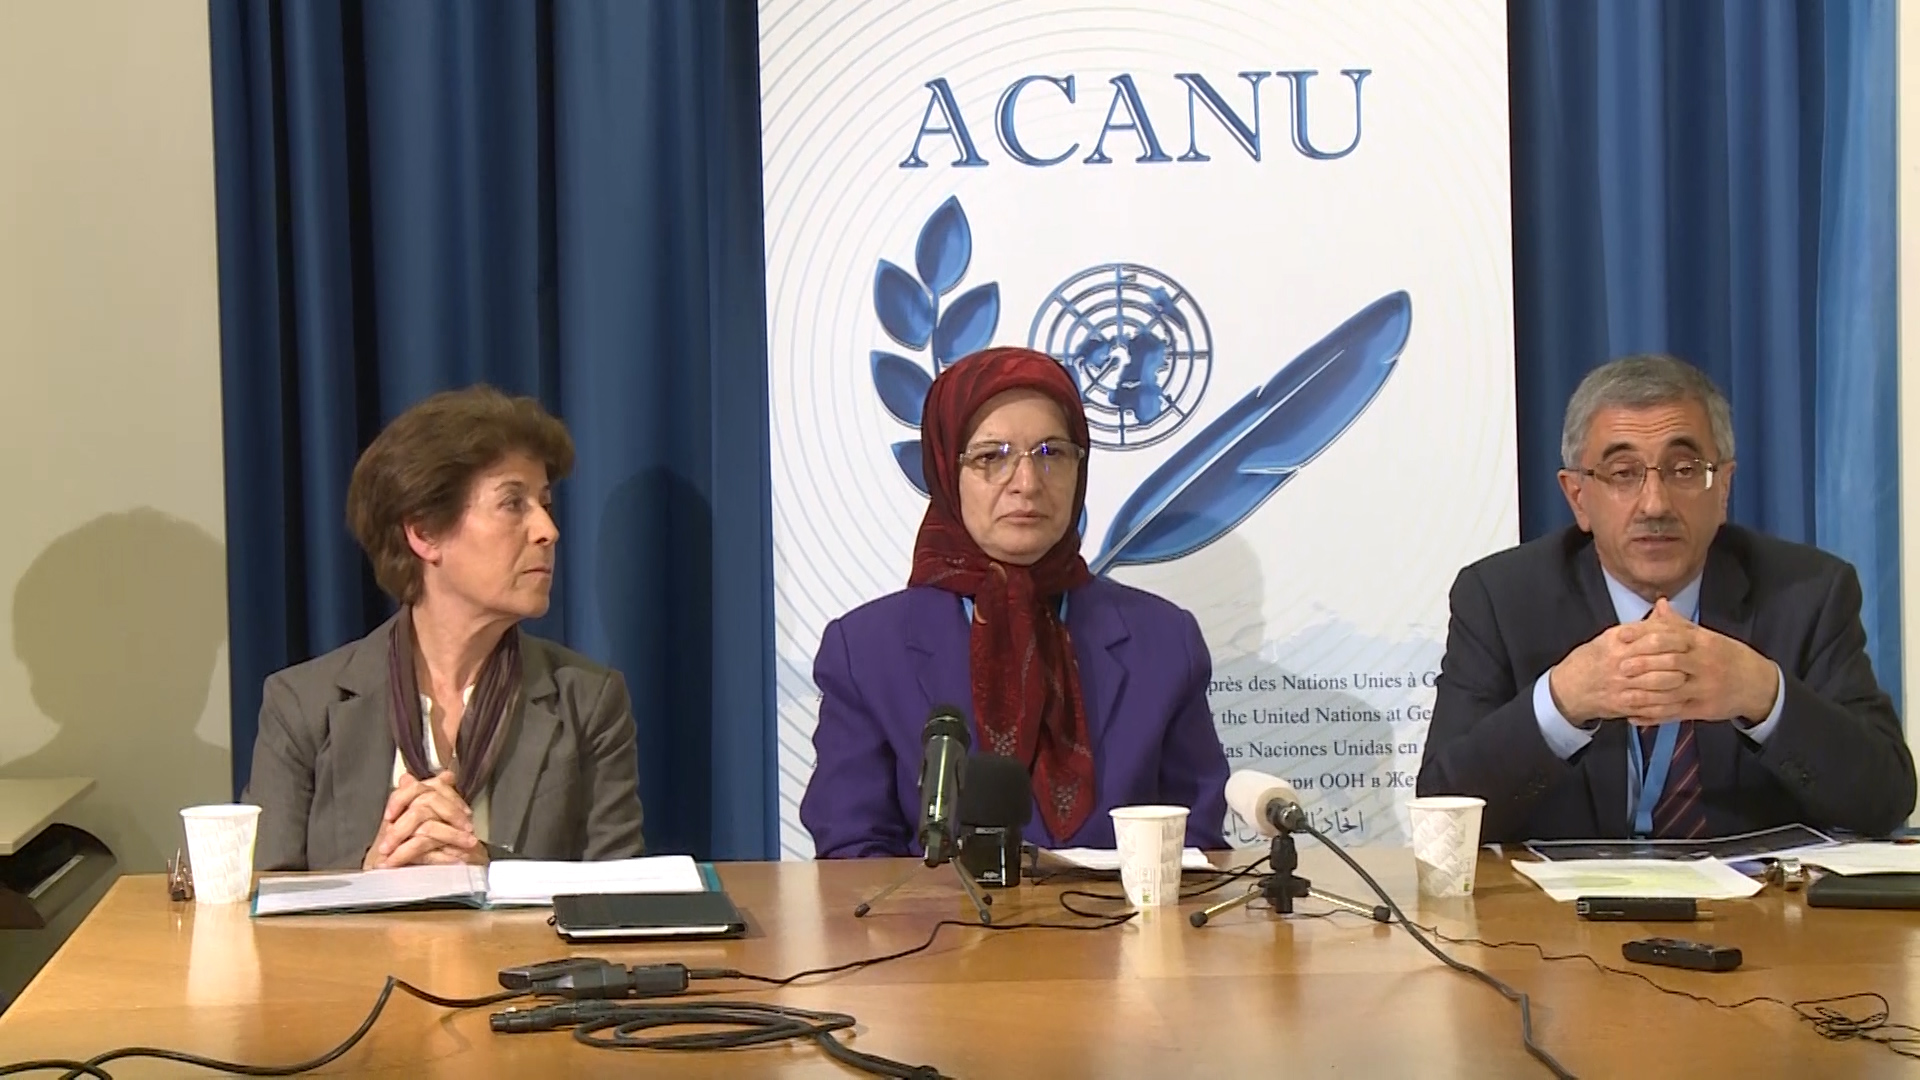 Thursday, March 12, 2020, in a briefing held at the Association of Accredited Correspondents at the United Nations (ACANU)